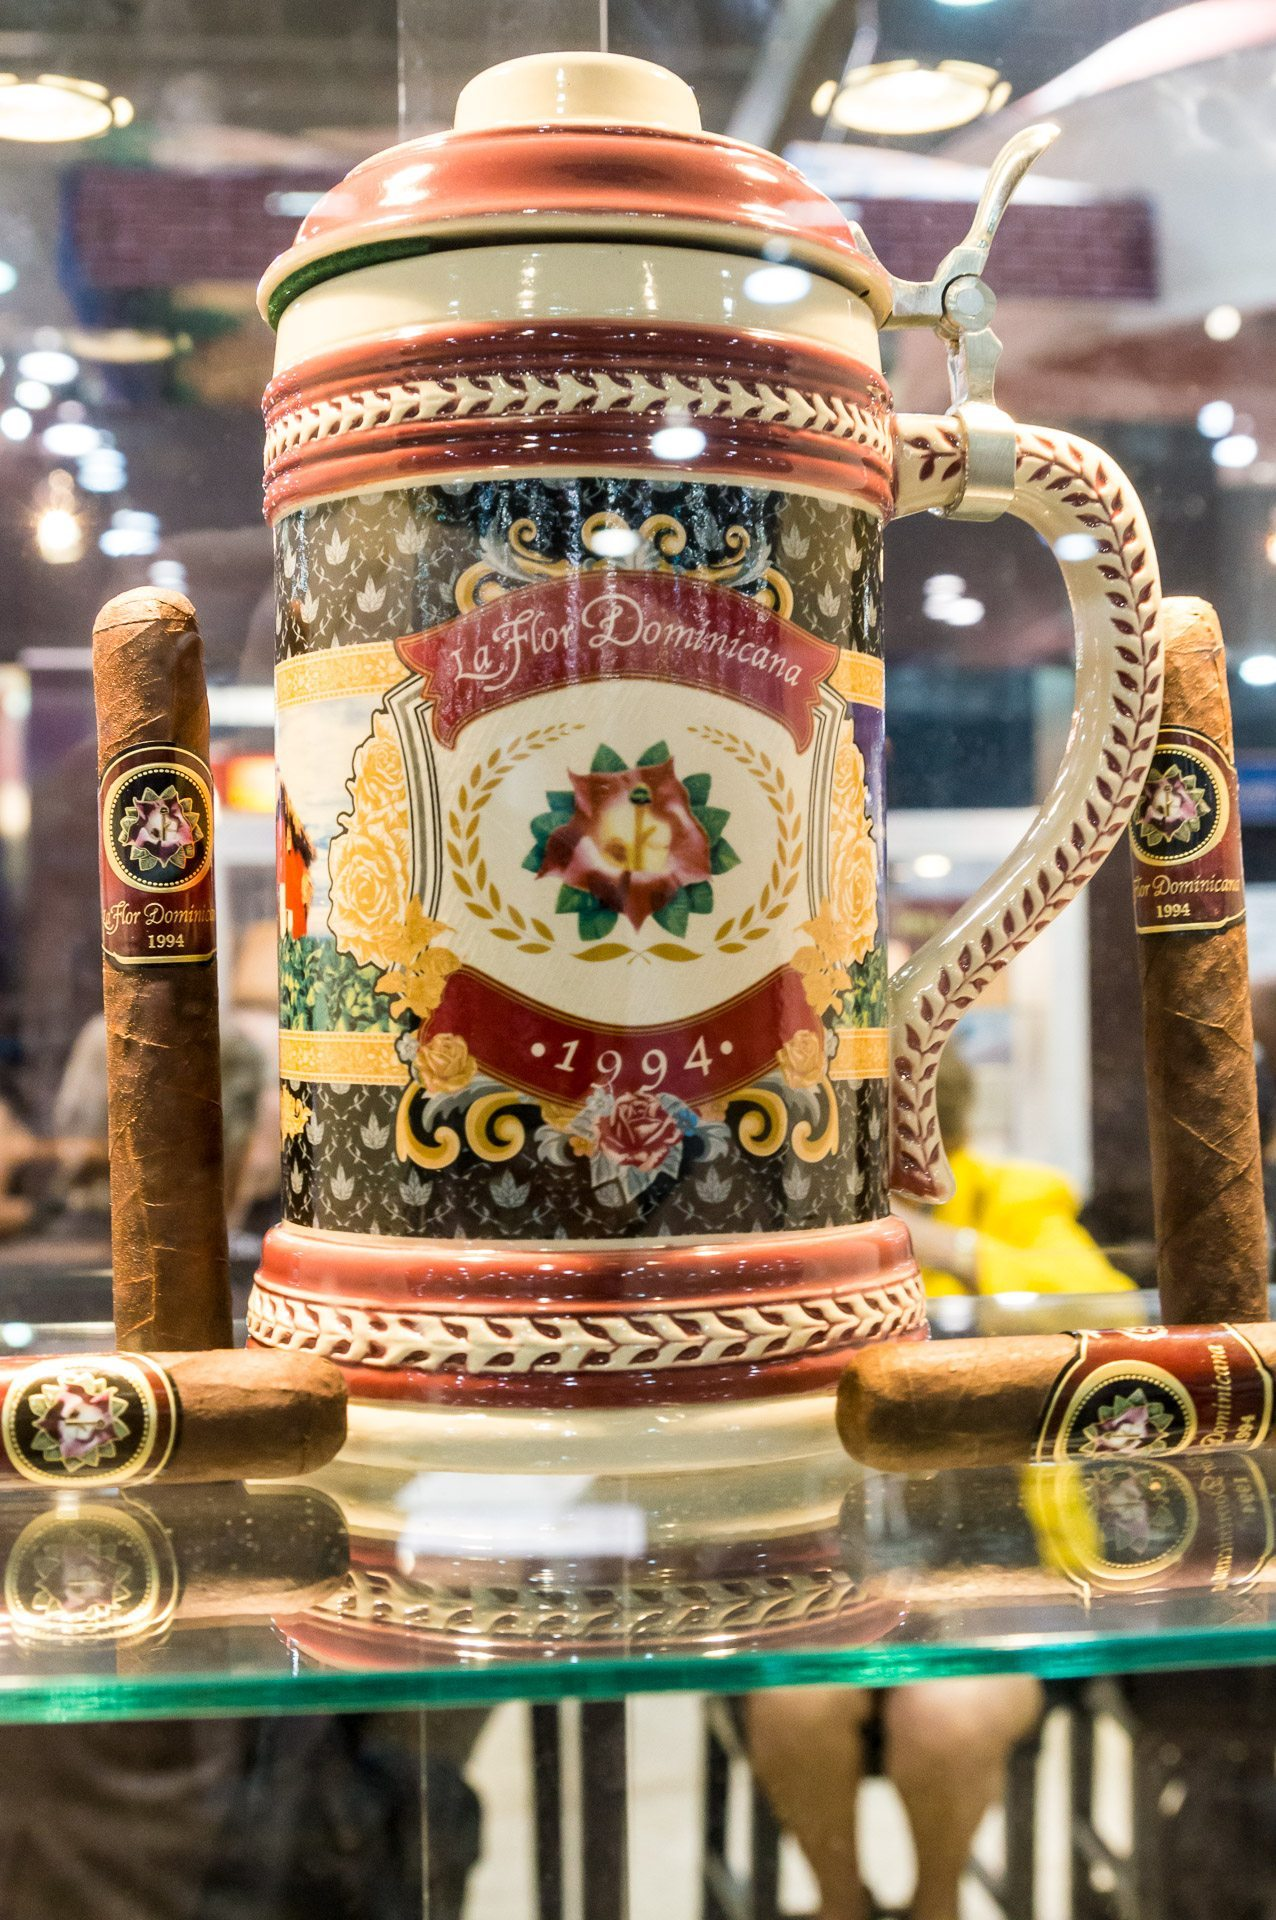 IPCPR 2014: The Show in Pictures – La Flor Dominicana, Legend Cigars and Les Mousquetaires